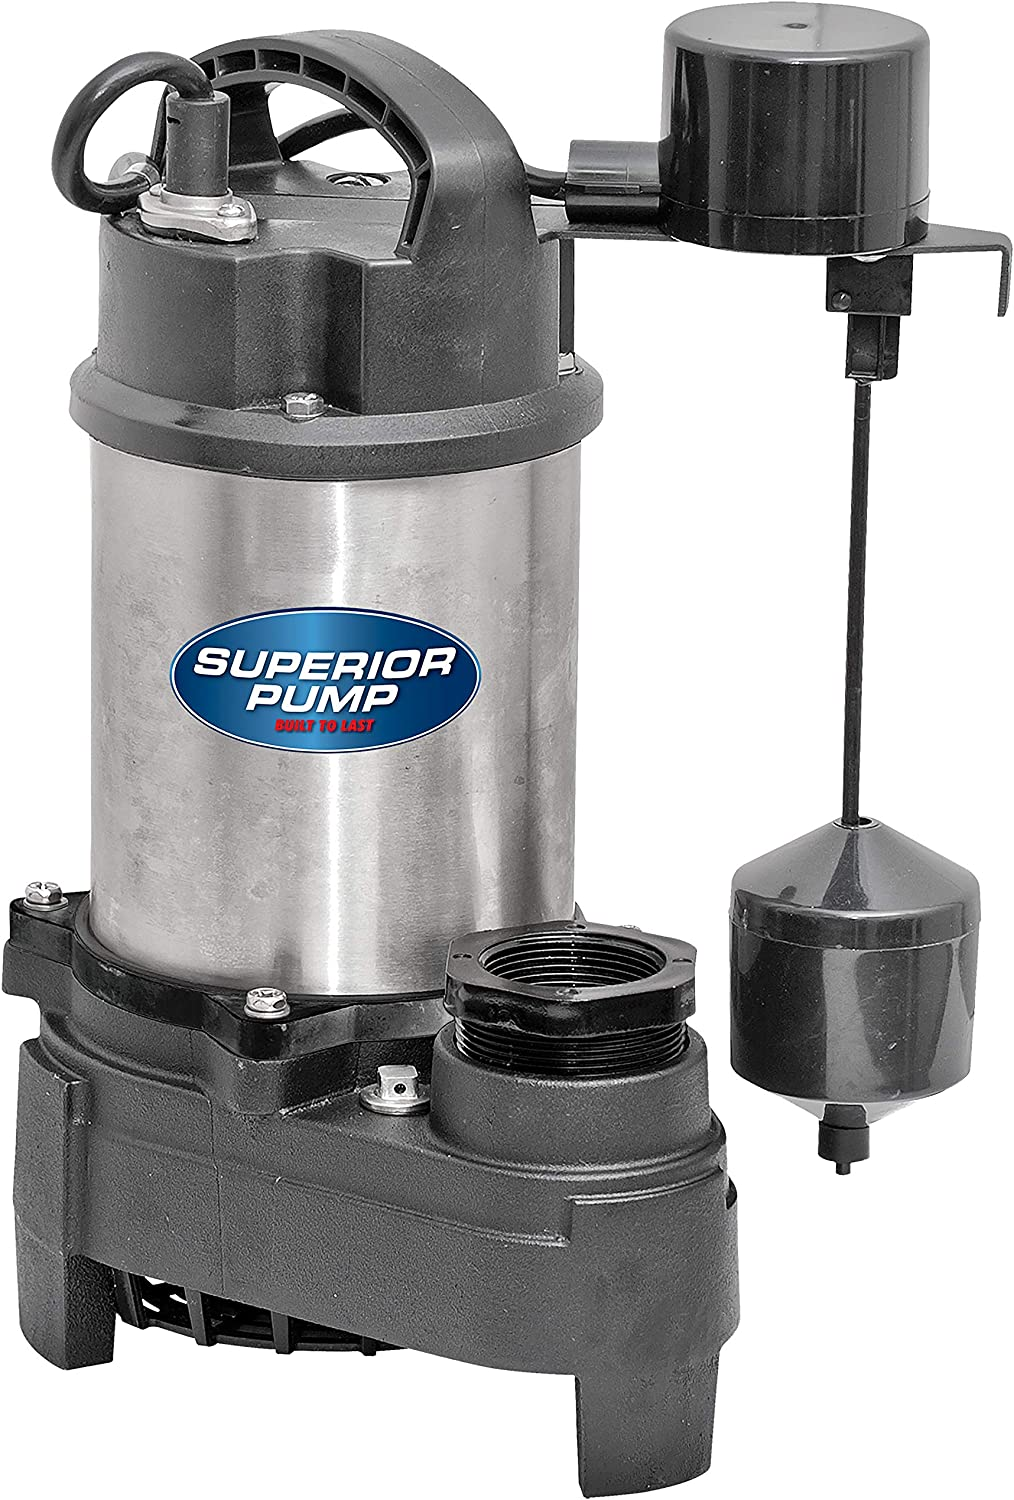 Superior Pump 92151 Stainless Steel 1 HP Cast Iron Sump Pump Side Discharge with Vertical Float Switch